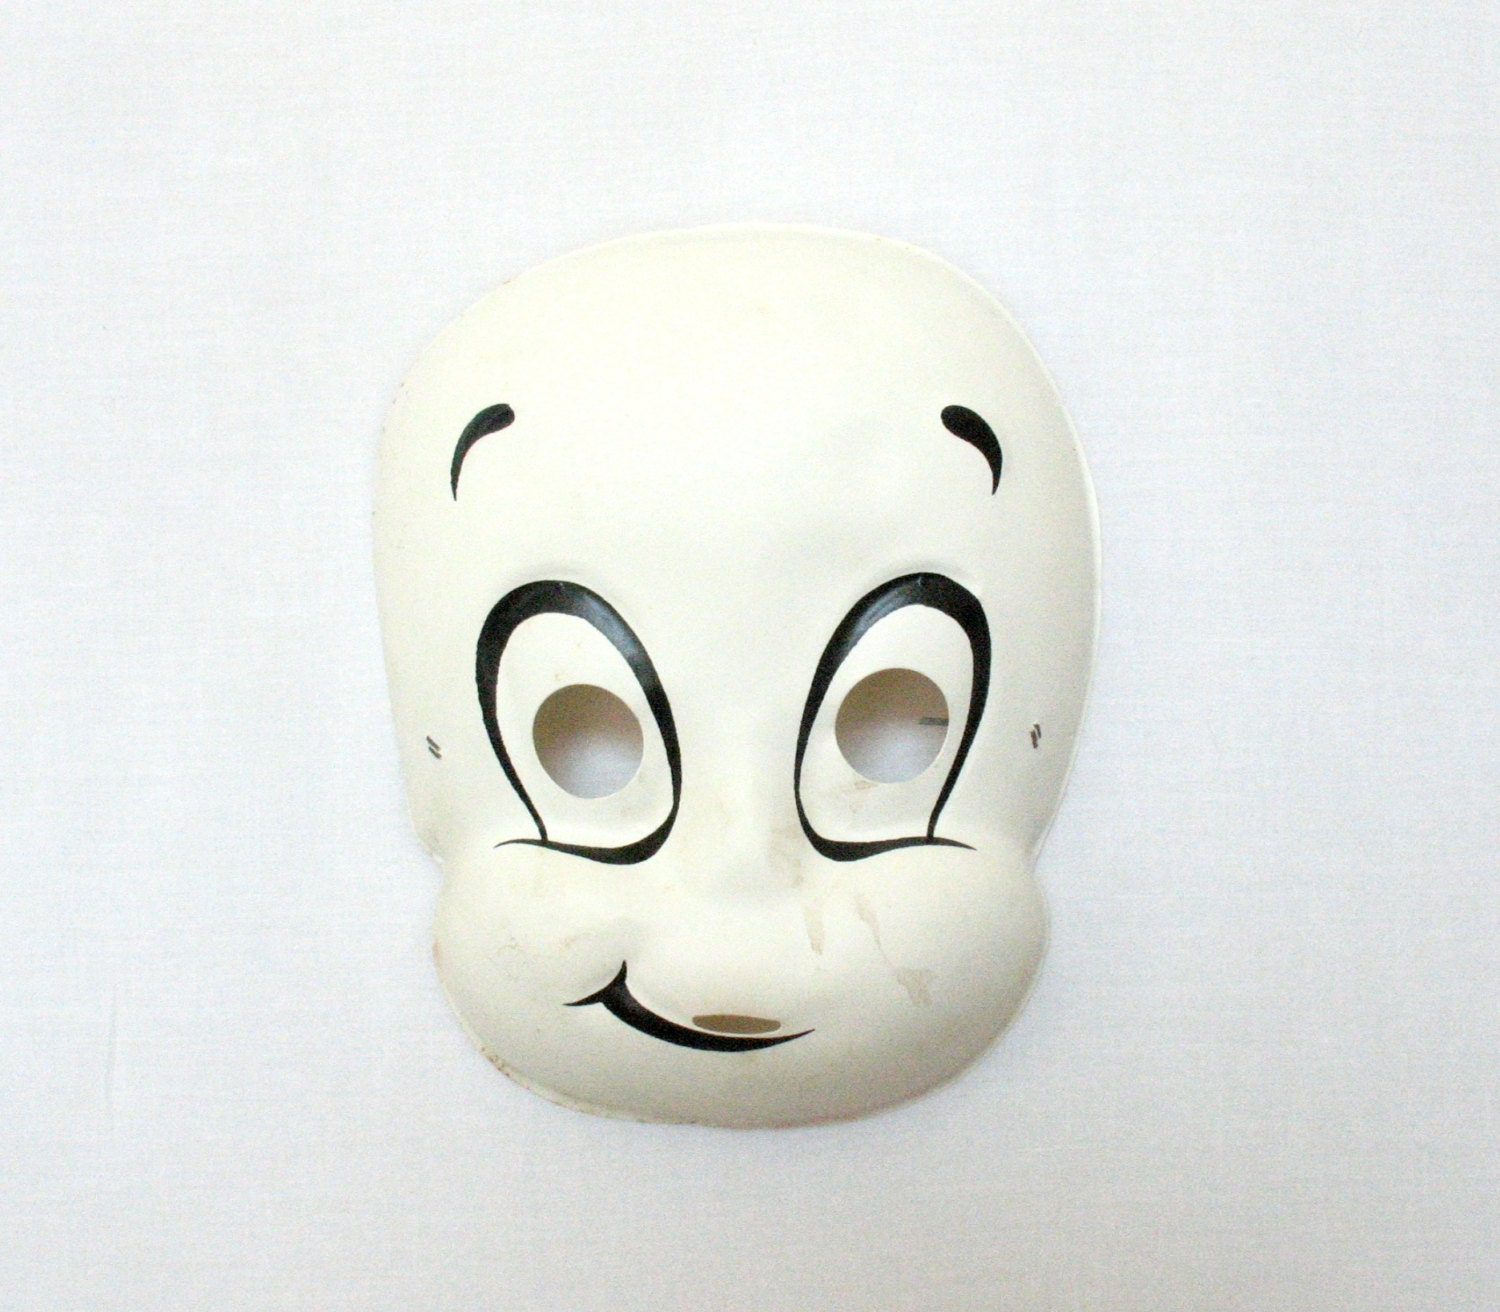 Vintage Casper the Friendly Ghost Mask with Original Box